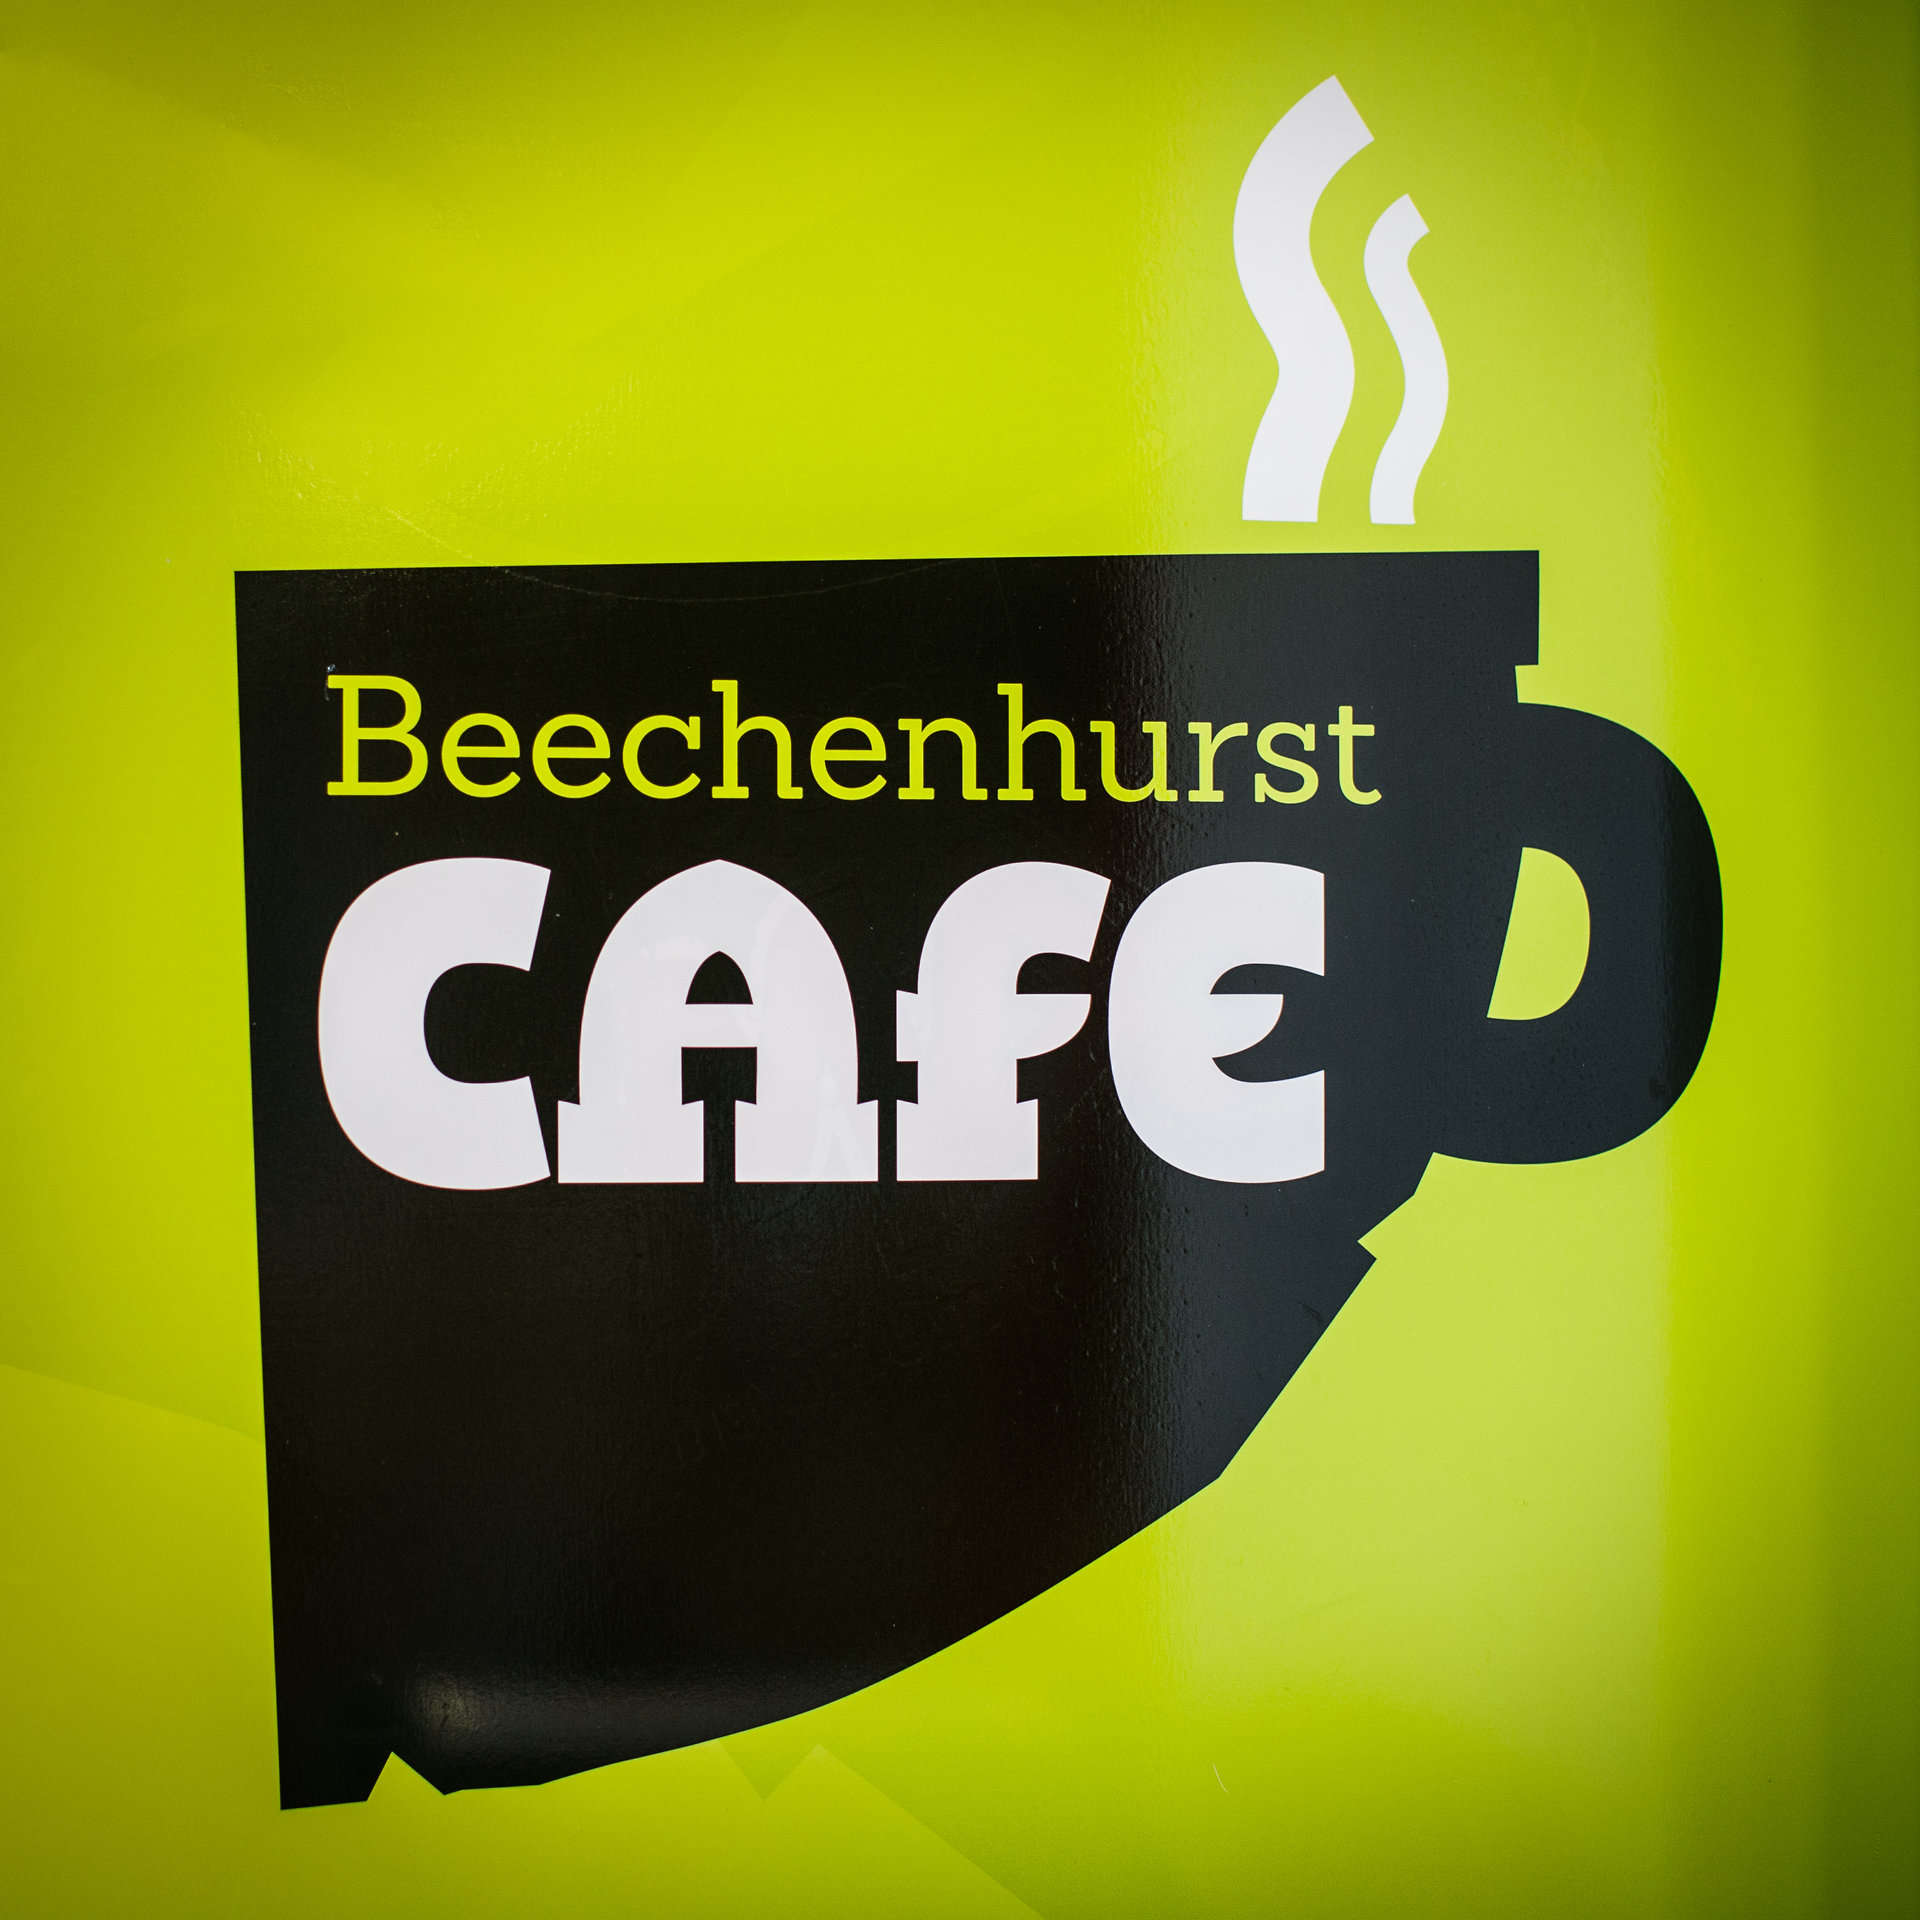 Beechenhurst Cafe Sign